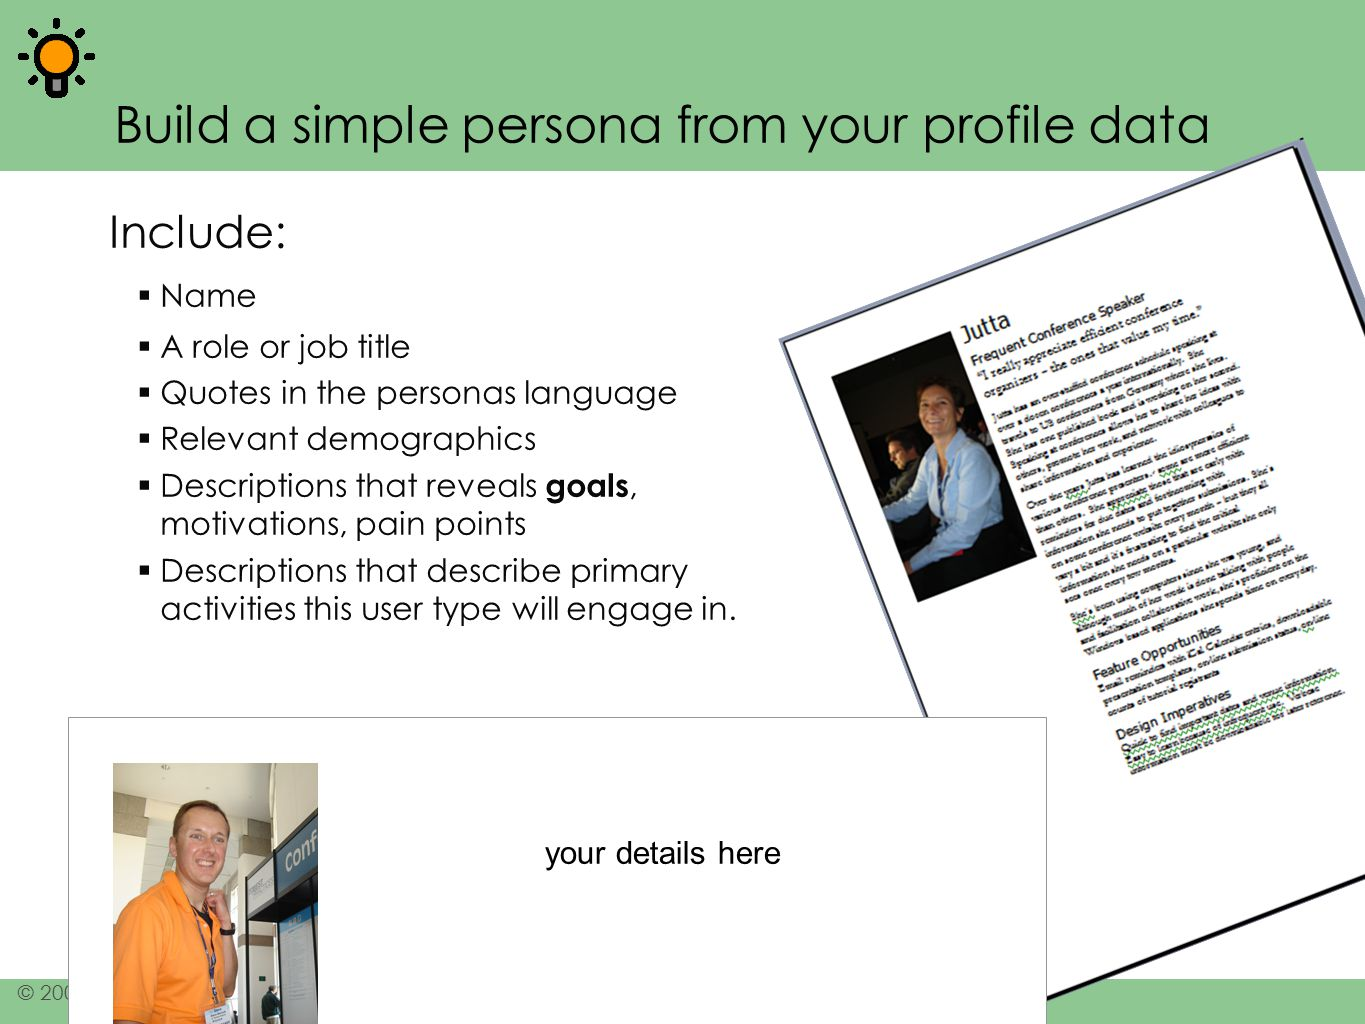 Build a simple persona from your profile data